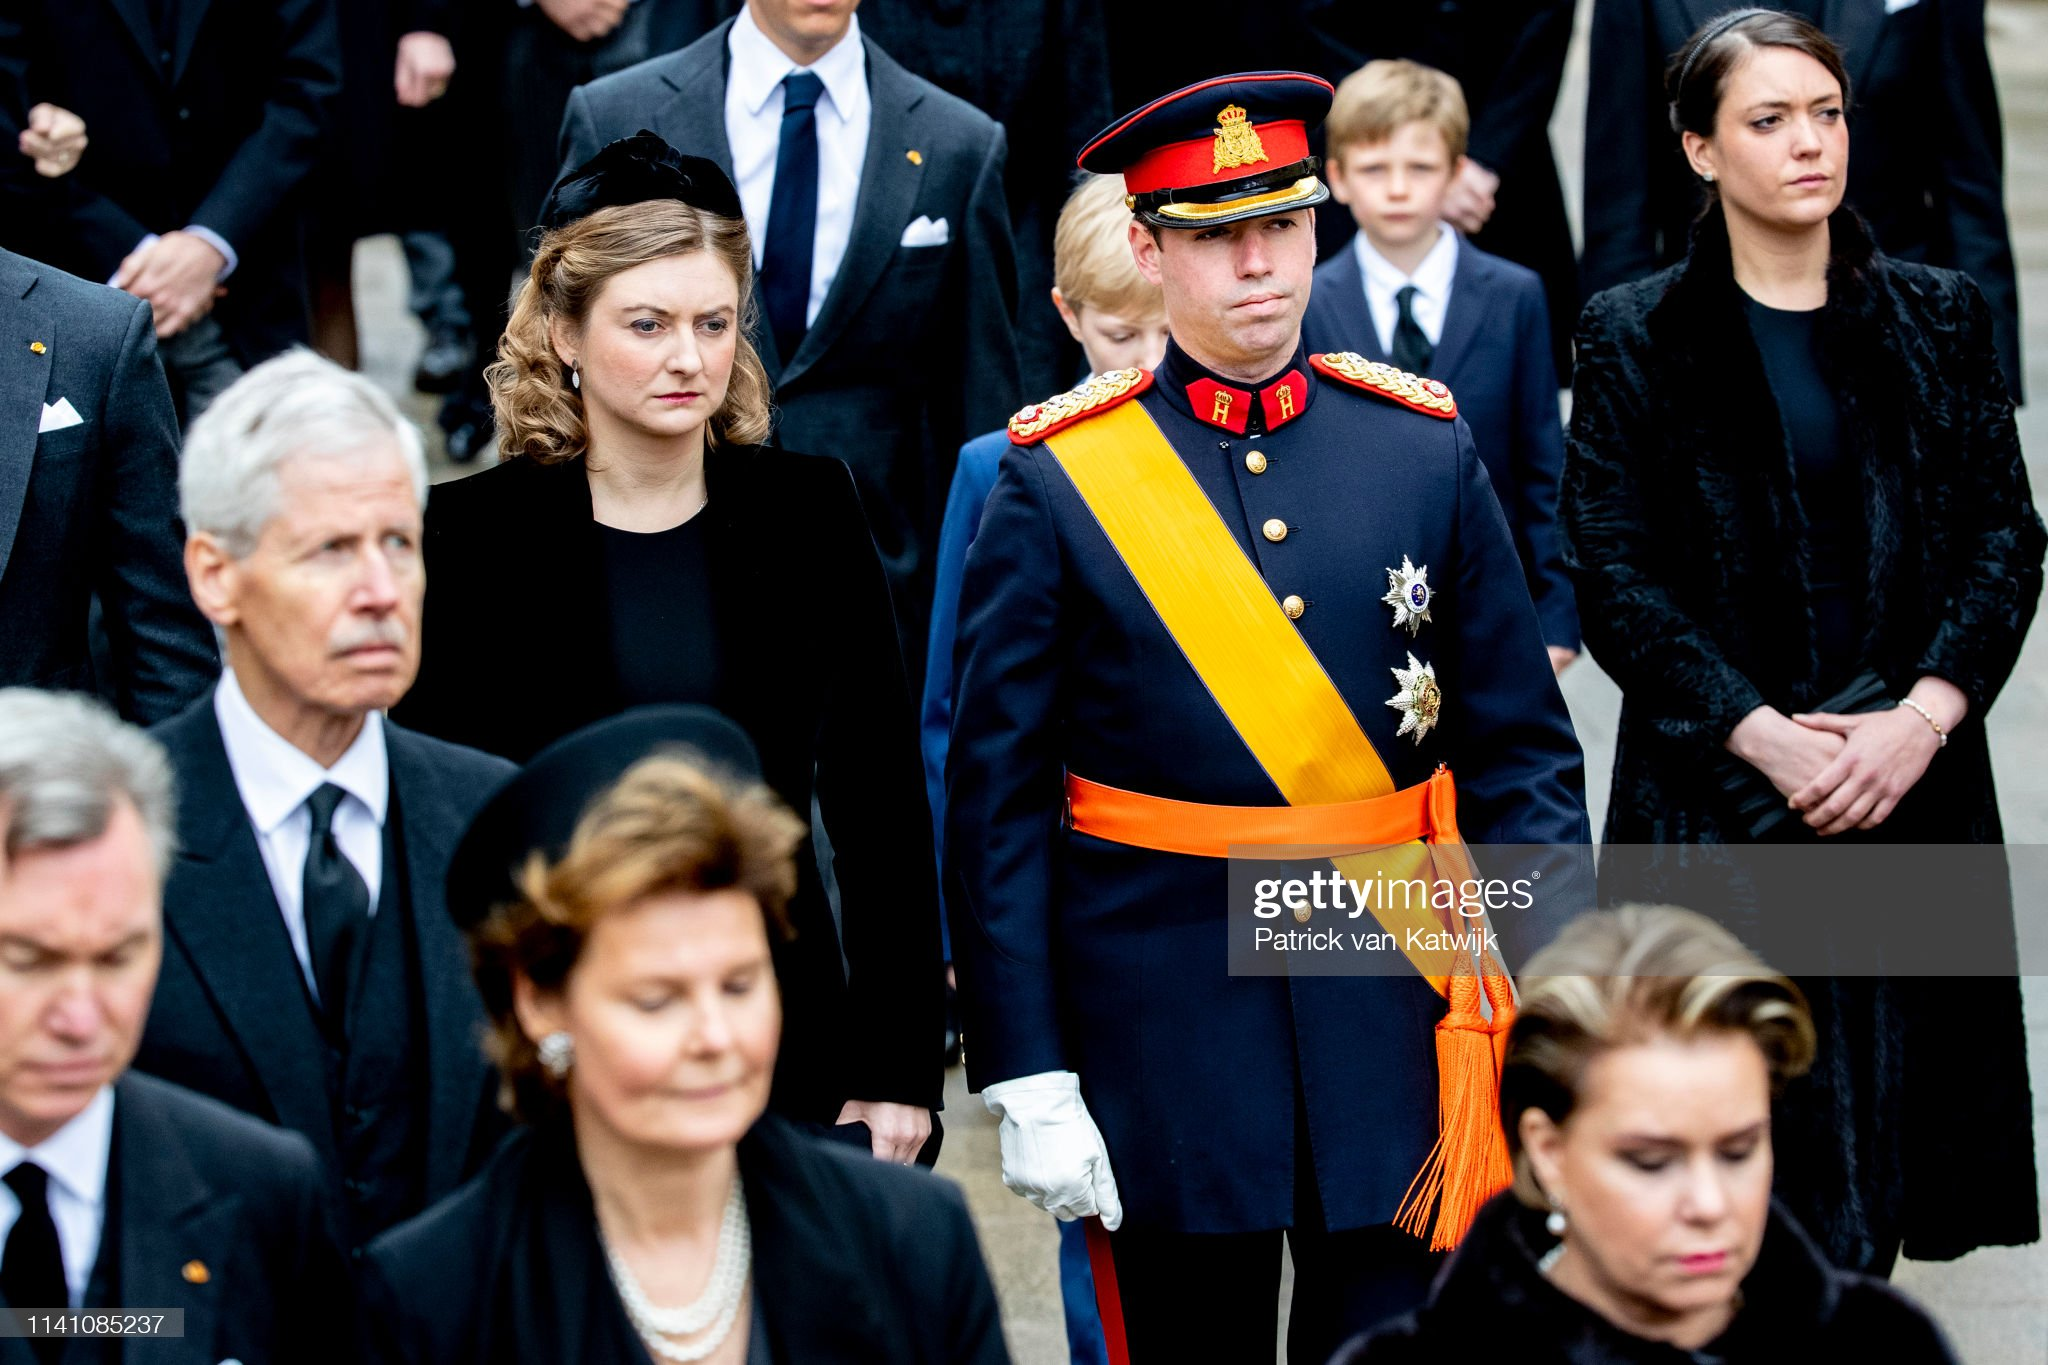 Похороны Великого Герцога Жана https://media.gettyimages.com/photos/hereditary-grand-duke-guillaume-of-luxembourg-and-hereditary-grand-picture-id1141085237?s=2048x2048